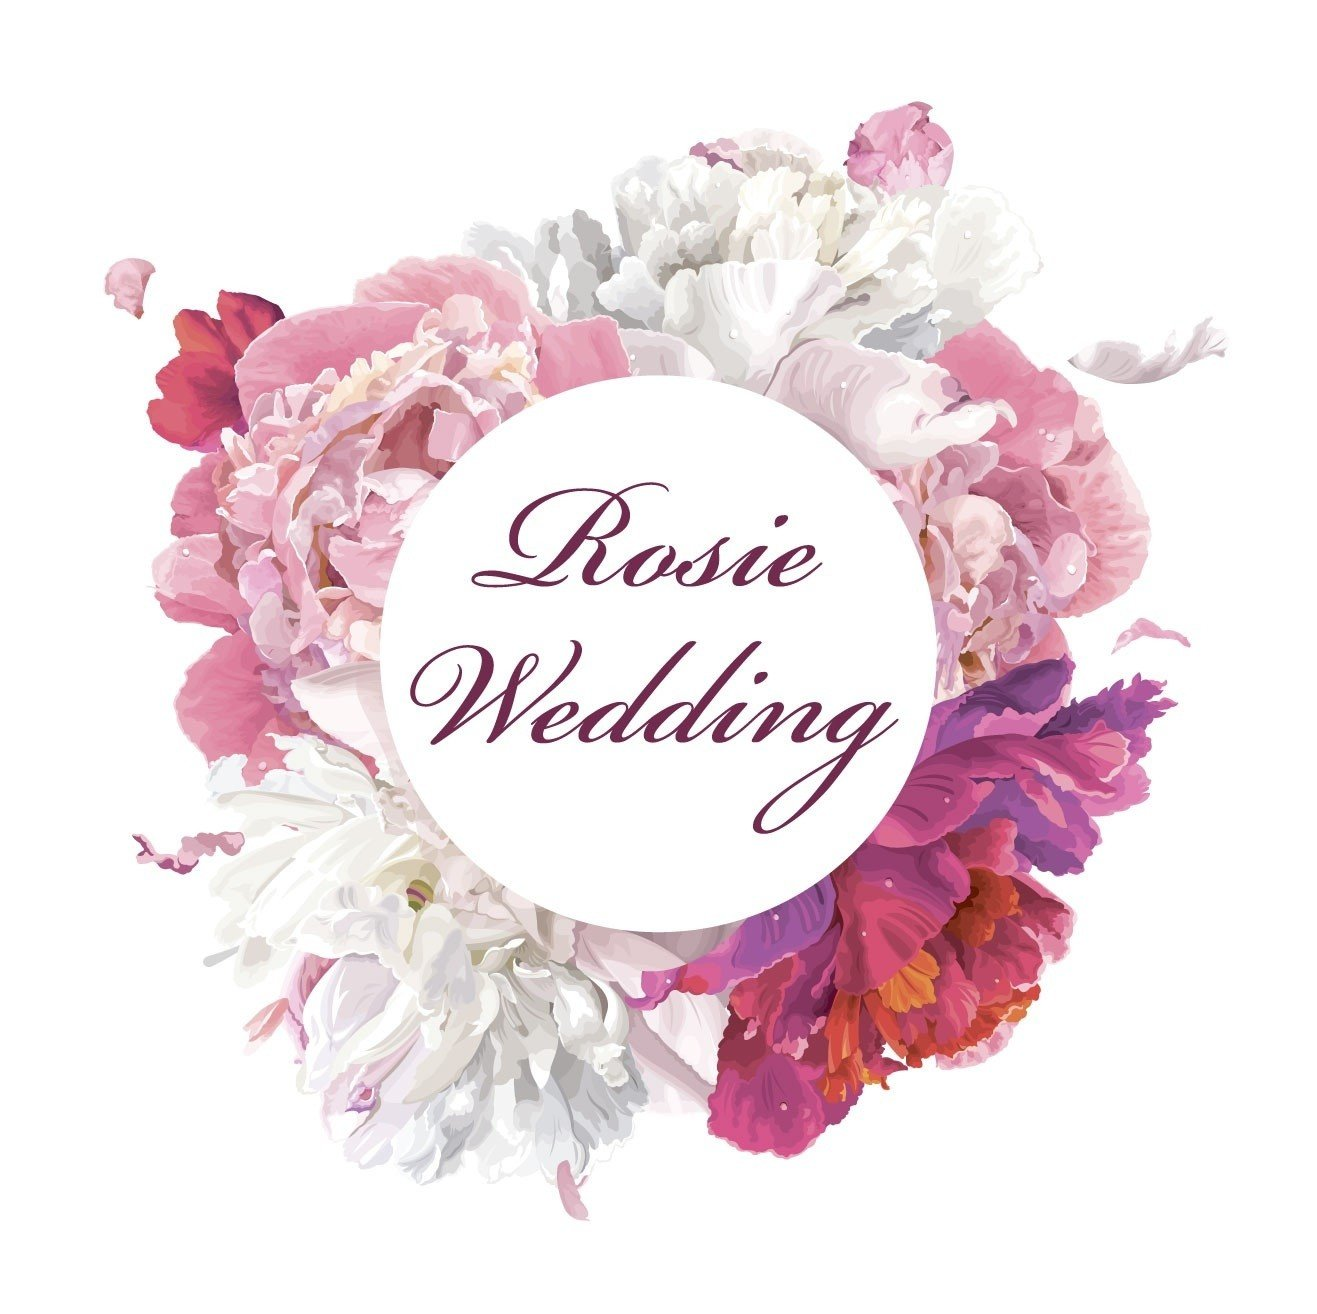 """Rosie Wedding"" – организация свадеб"